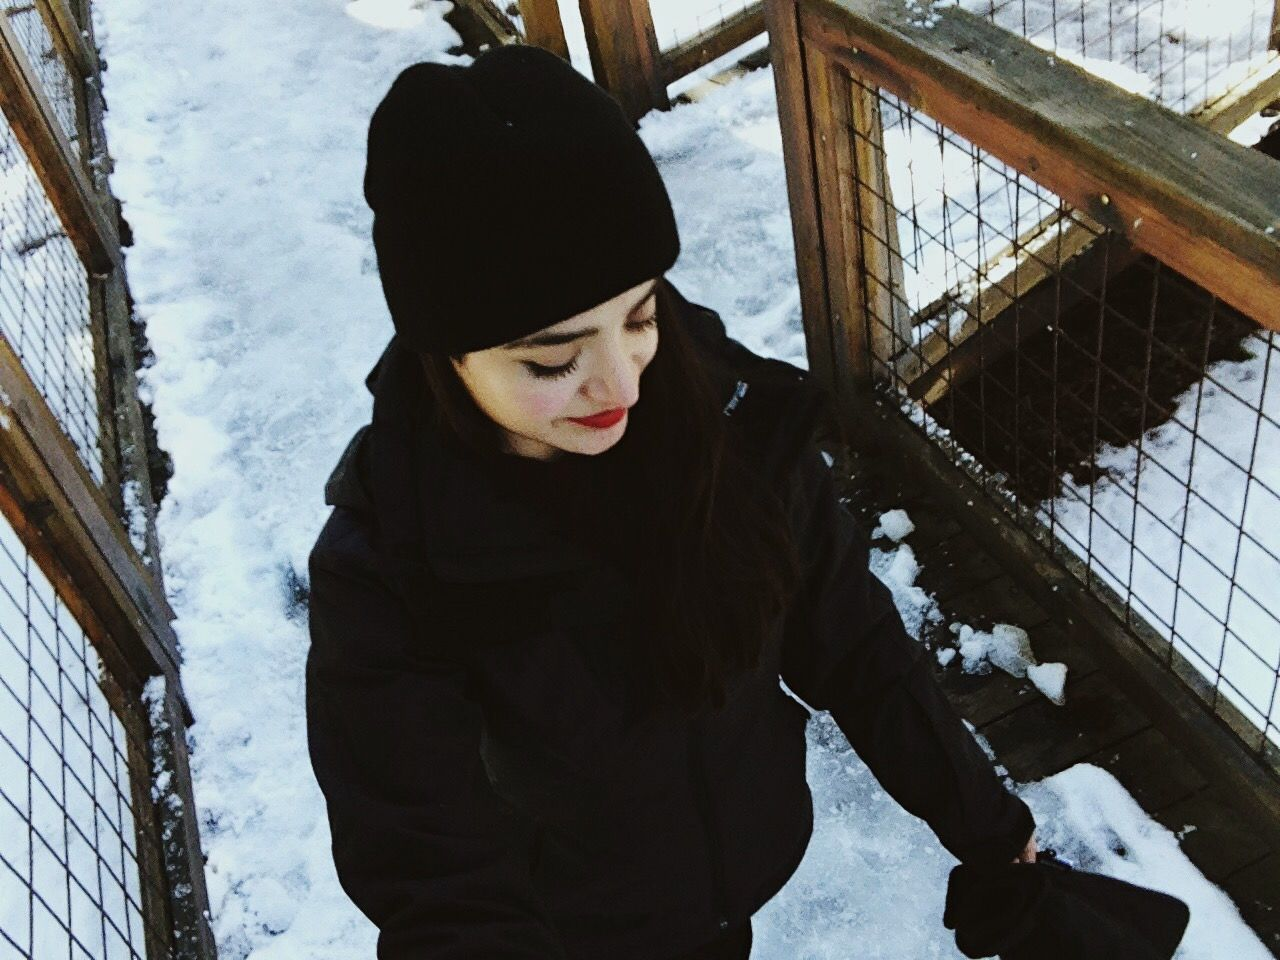 Sweater weather Deavz Traveling Life Winter Snow Outdoors